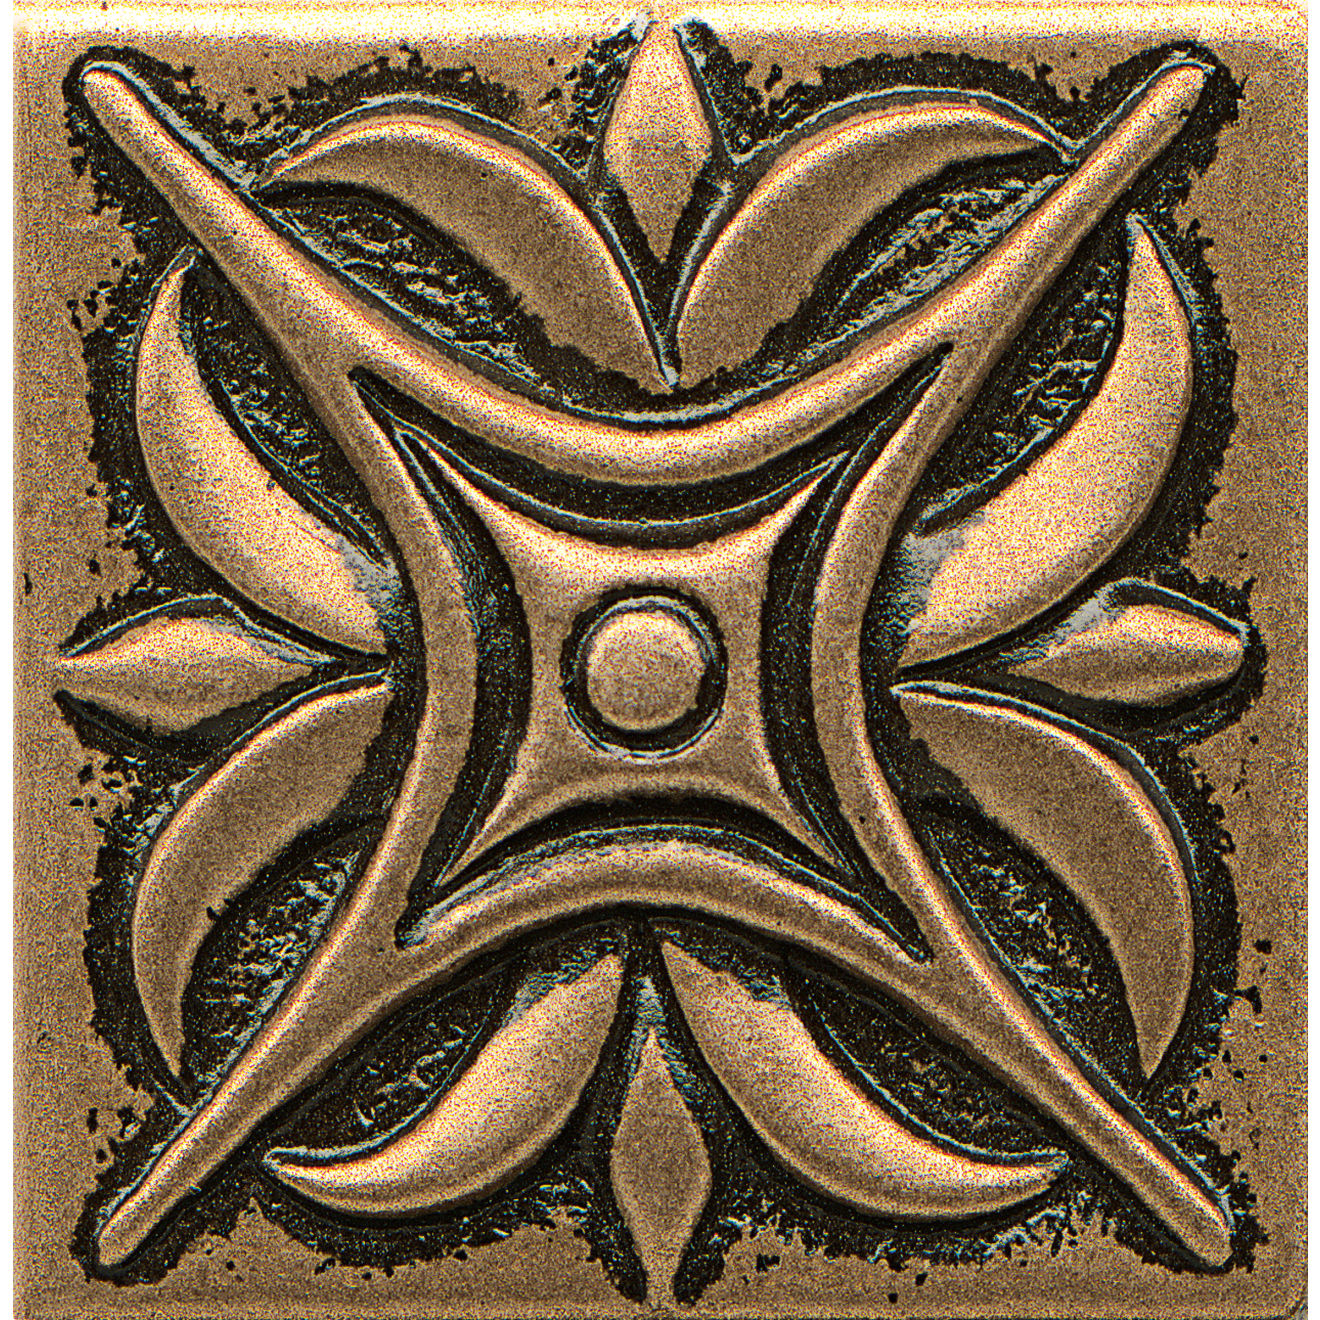 """Ambiance 2"""" x 2"""" Rising Star Metal Resin Insert in Bronze"""